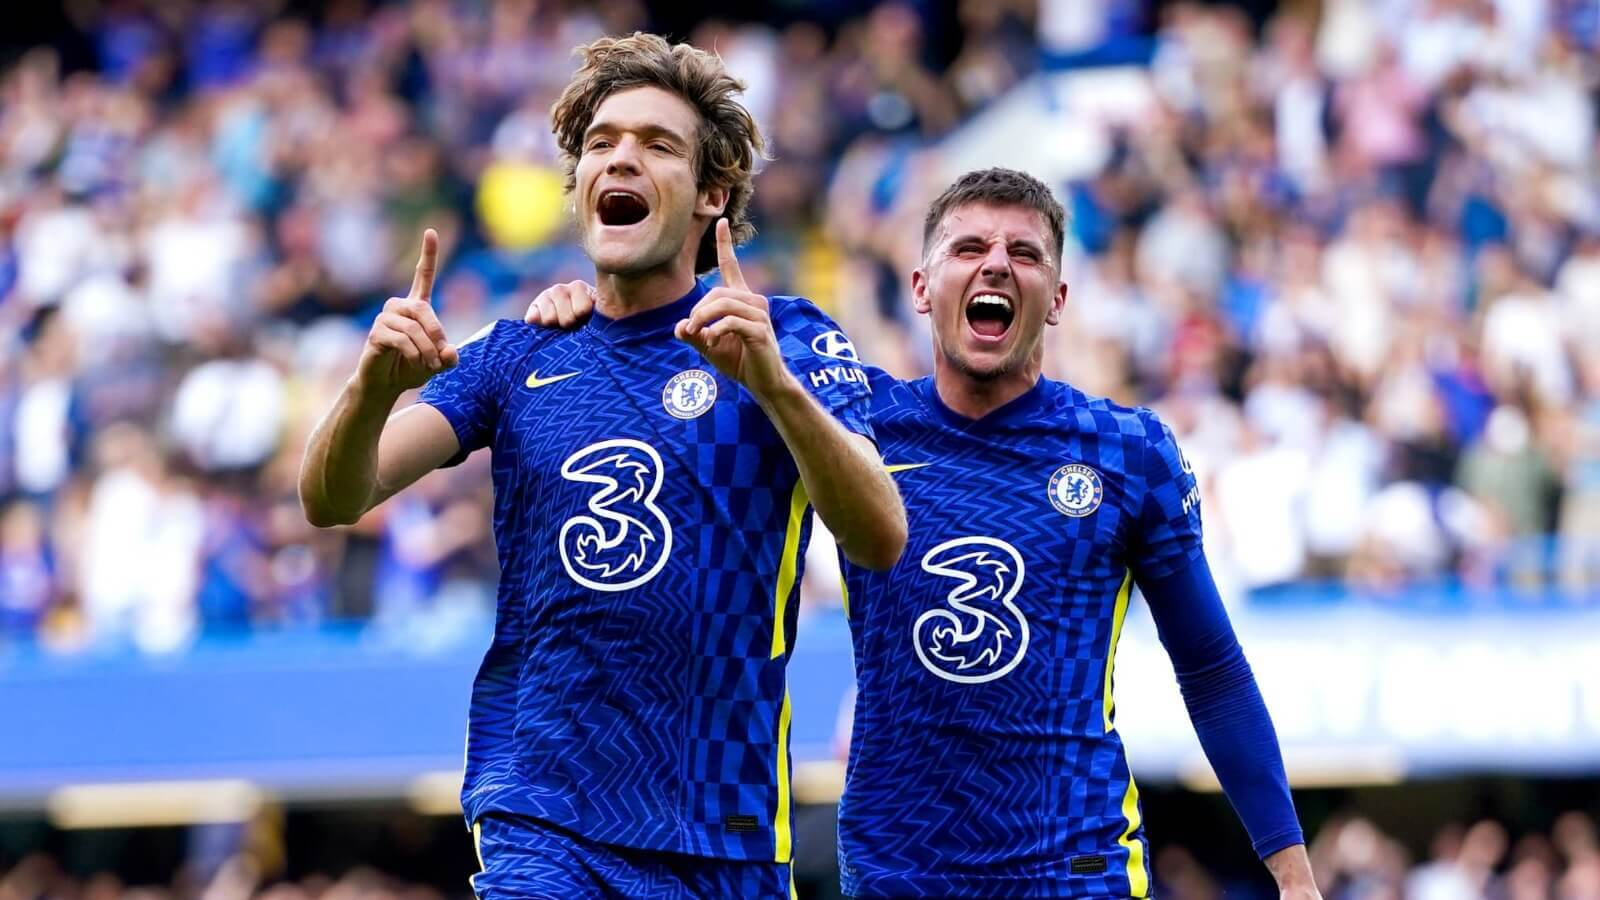 Premier League match results: Manchester United, Chelsea and Liverpool win